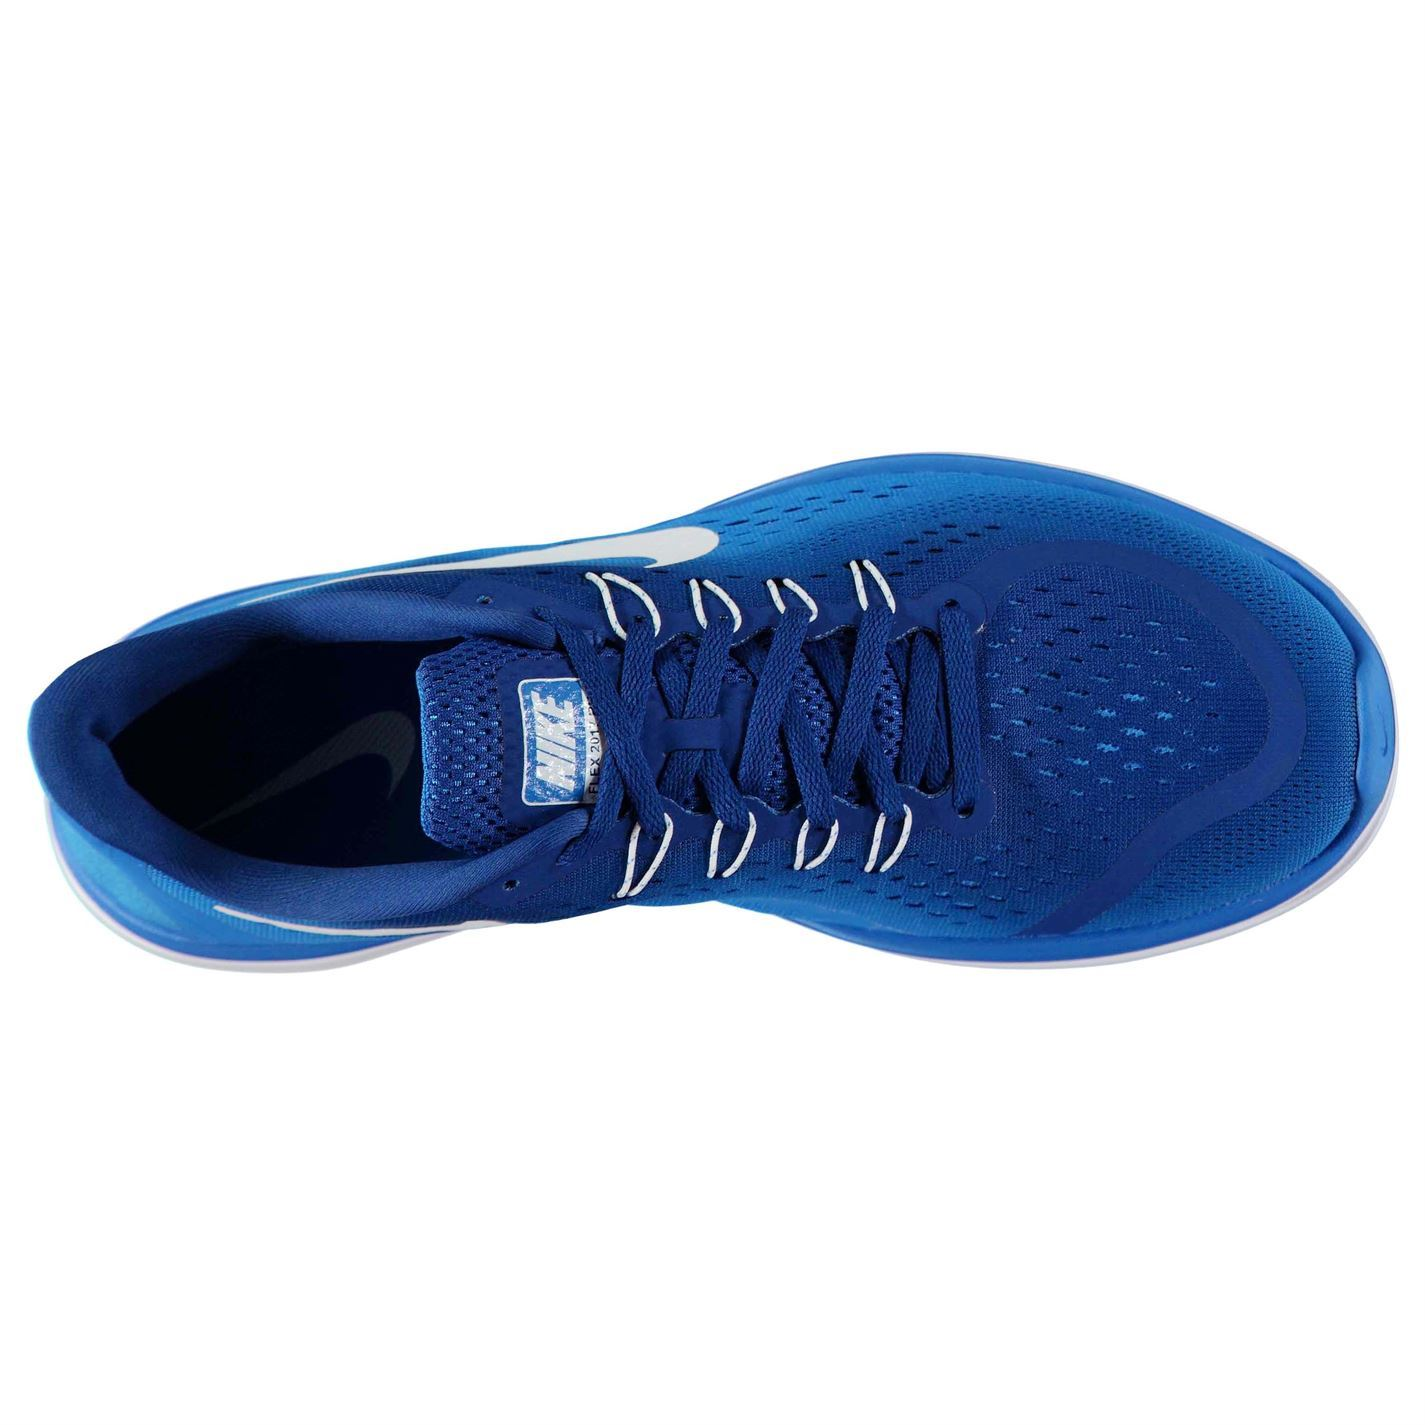 lowest price 21942 77291 ... Nike Flex 2017 Run Running Shoes Mens Blue White Jogging Trainers  Sneakers